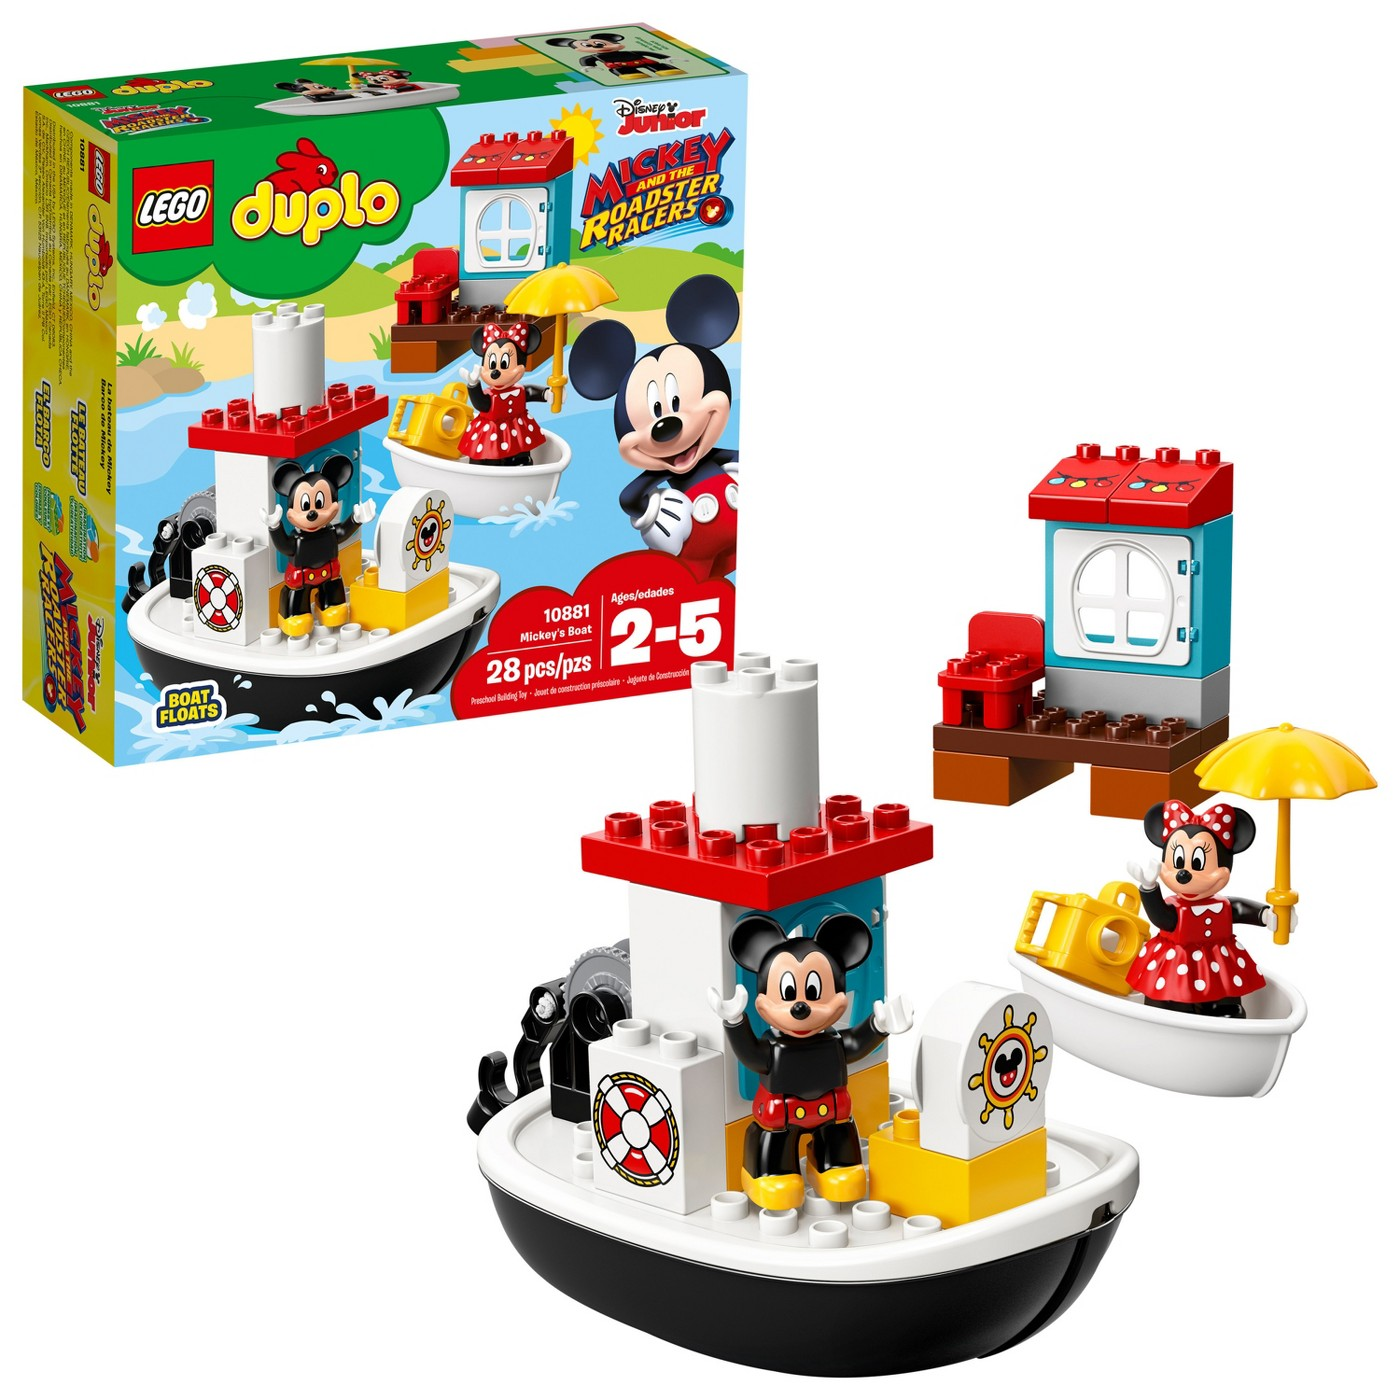 LEGO DUPLO Disney Mickey Mouse's Boat 10881 - image 1 of 8